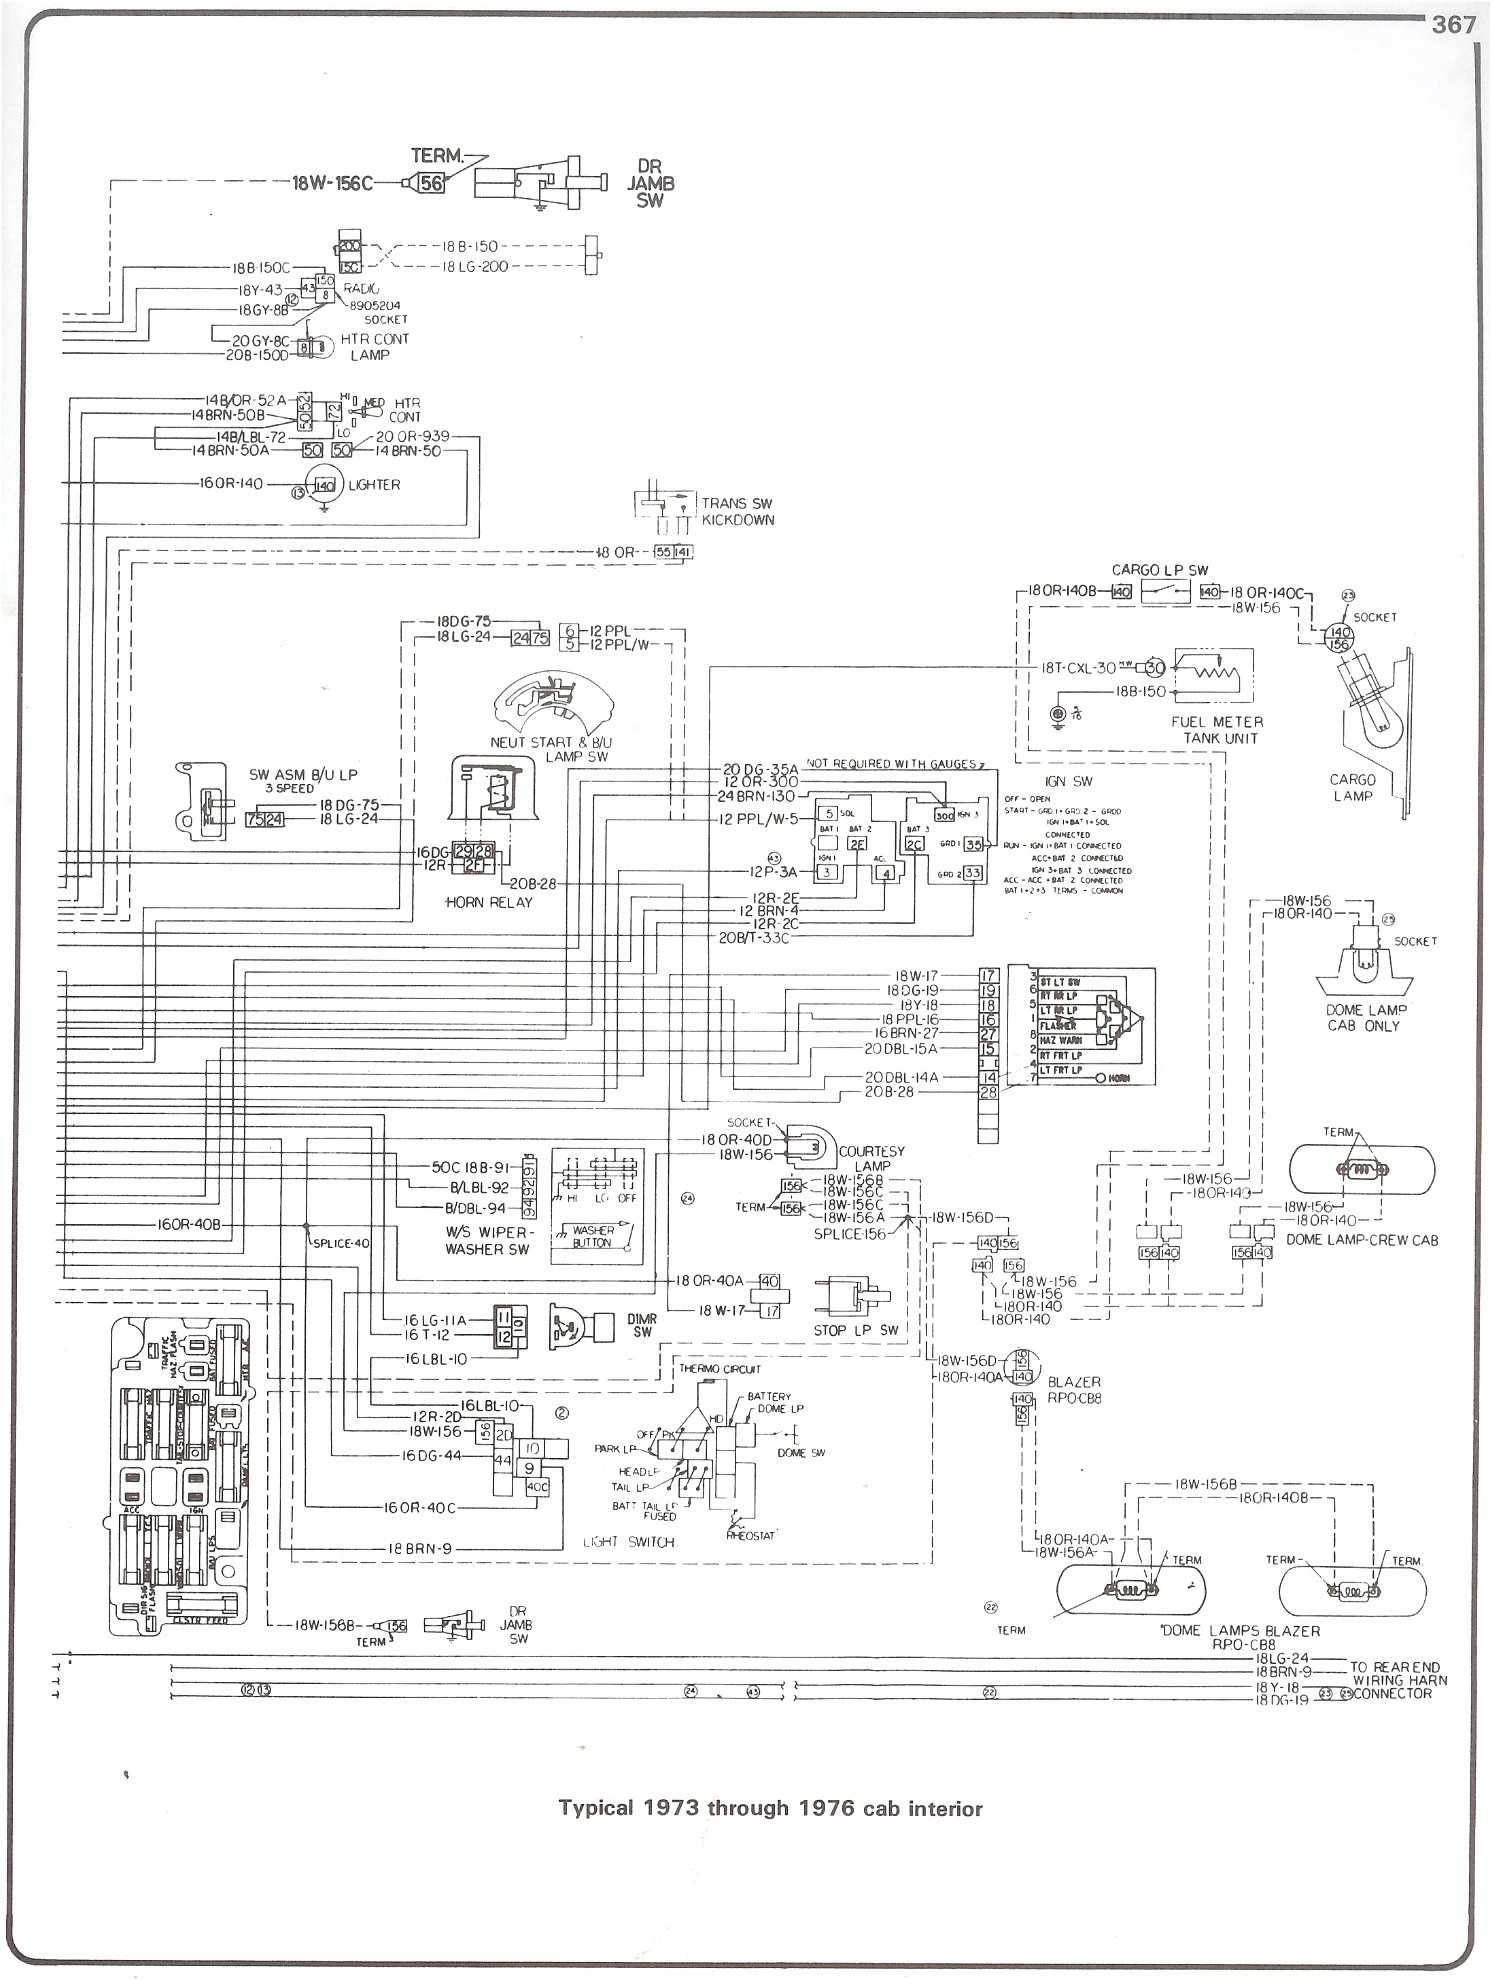 hight resolution of complete 73 87 wiring diagrams 2000 gmc sierra wiring diagram 1974 gmc pickup wiring diagram